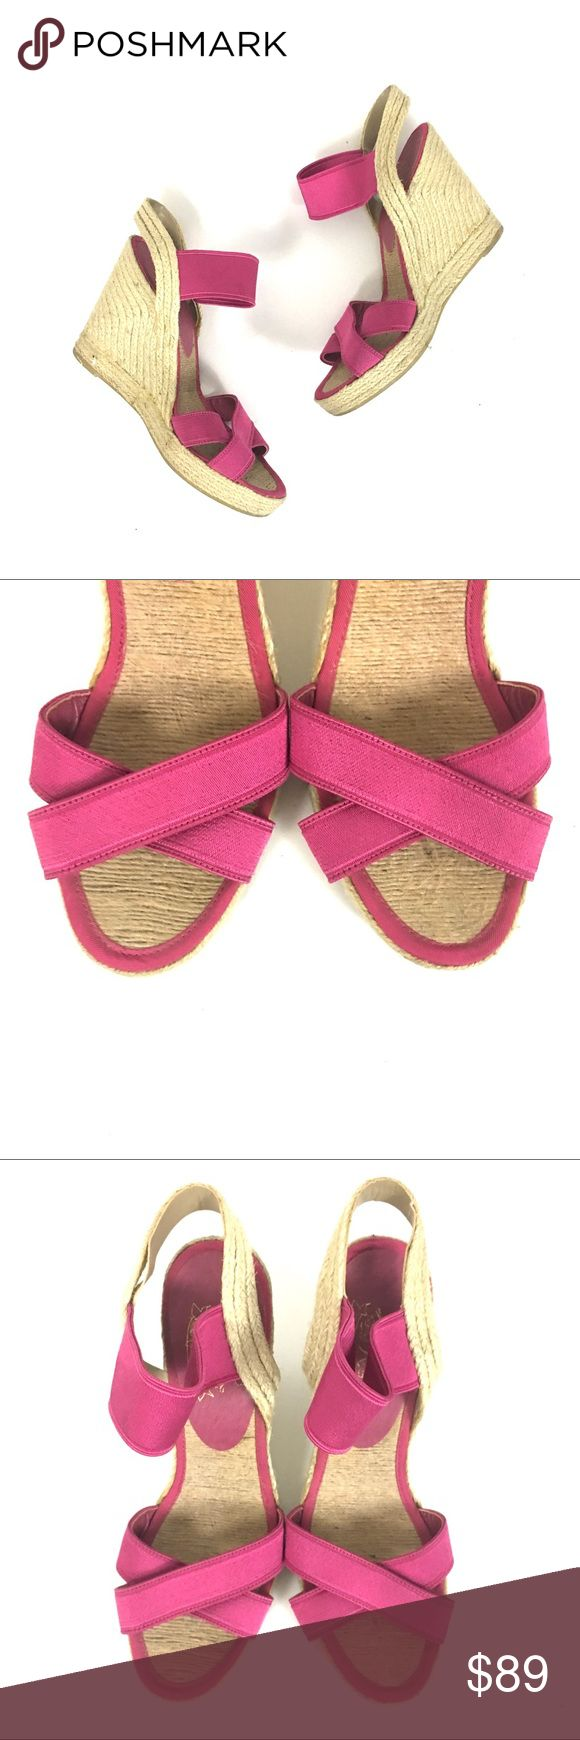 Nine West hot pink espadrille wedges Nine West. Hot pink stretchy straps. Gently used. I only wore them twice espadrille bottoms to the wedge. Light wear to the bottoms and to the raffia edges. Size 10   🌹no trades 🌹discounts on bundles of 2+  🌹1000 items listed, take a peak!  🌹suggested user, posh compliant:) Nine West Shoes Espadrilles